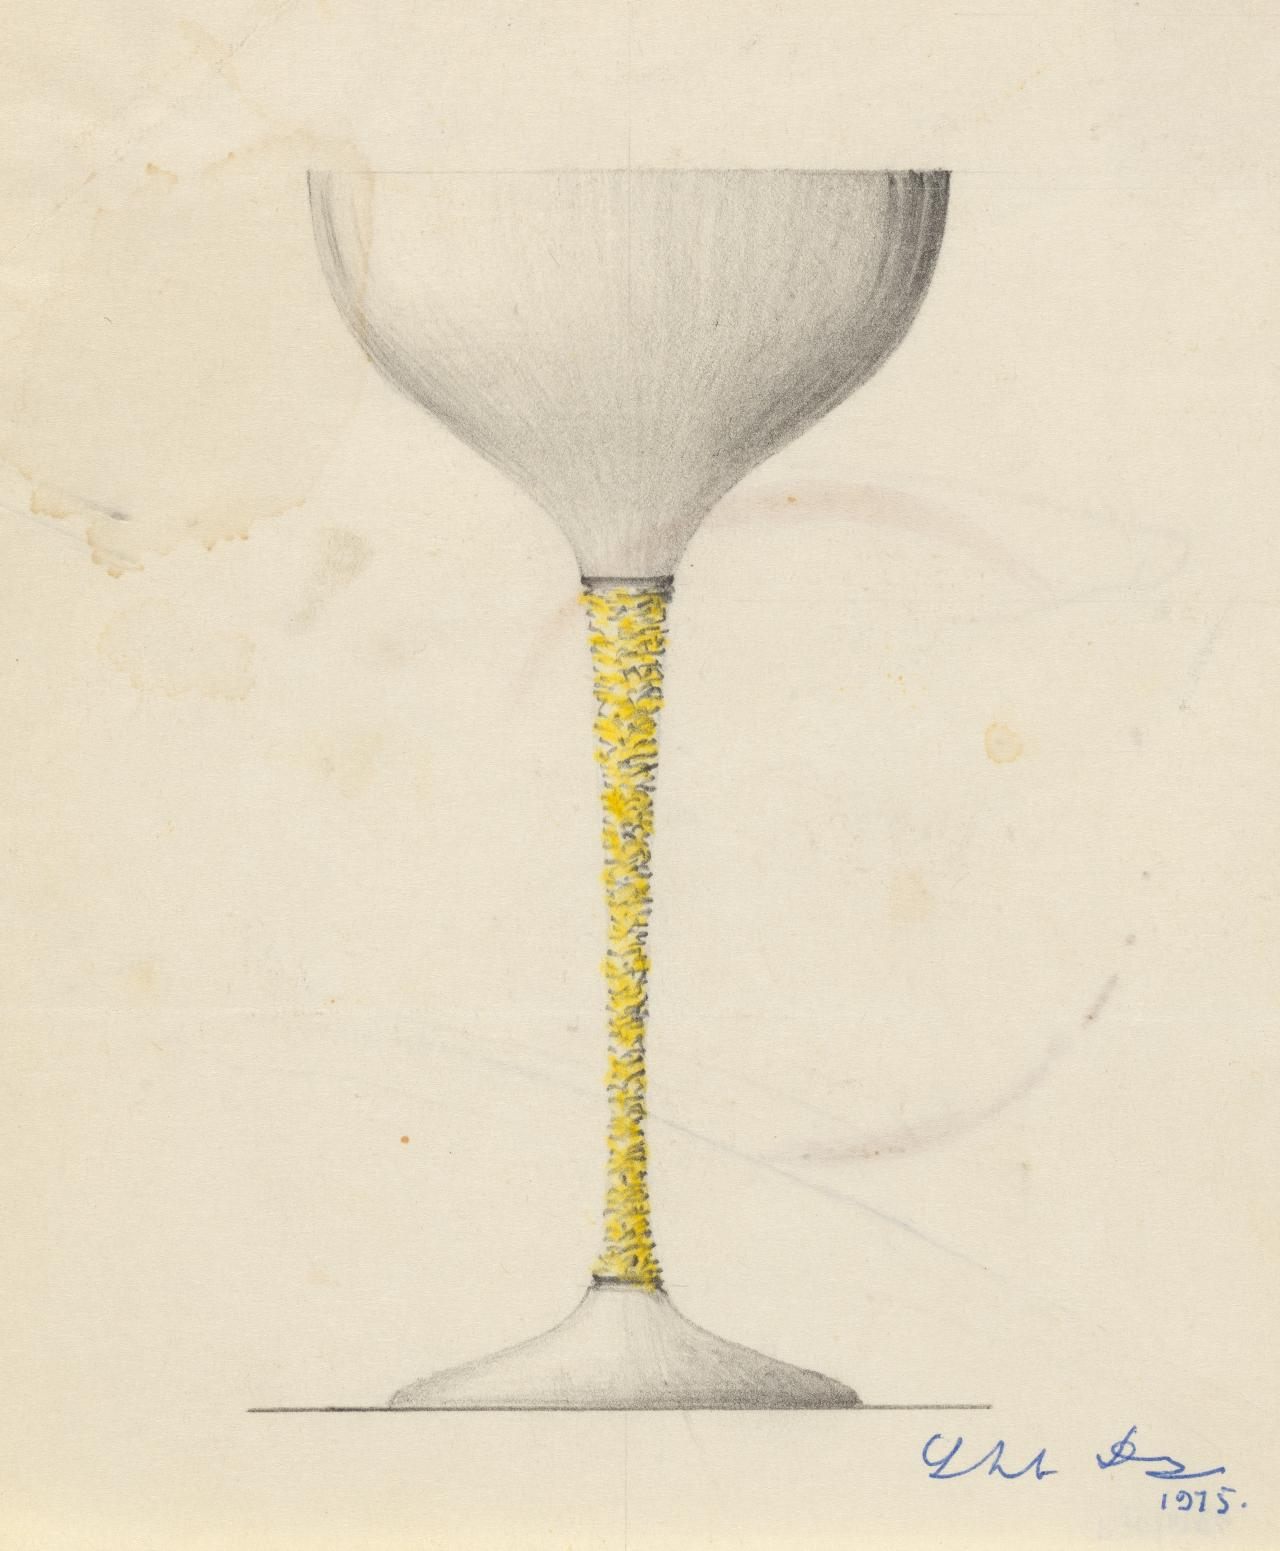 Study for a Crocus goblet